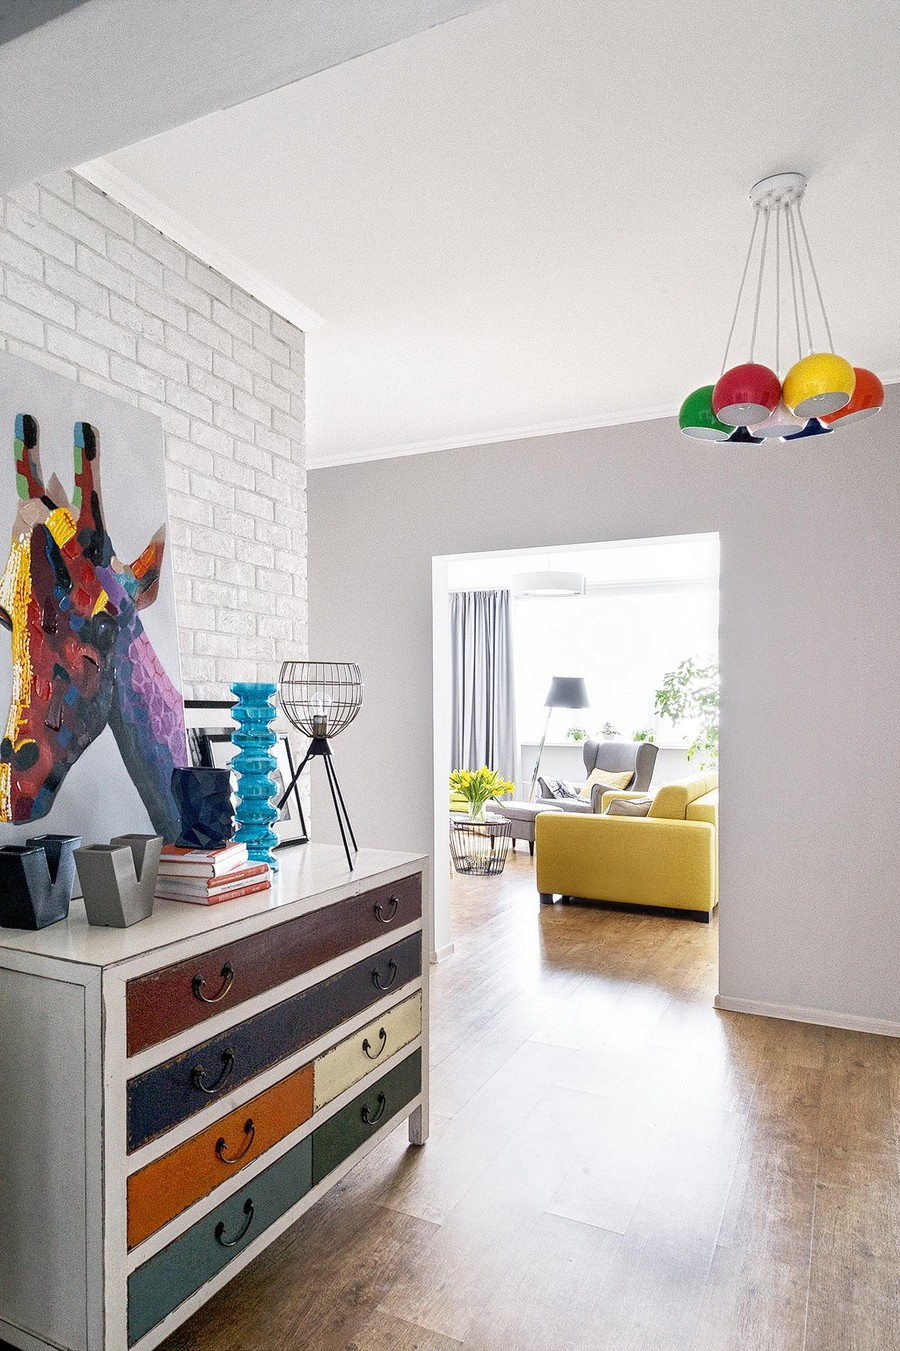 4-contemporary-style-interior-design-airy-light-bright-accents-corridor-hallway-scandinavian-style-motifs-faux-brick-white-wall-multicolor-chest-of-drawers-lamp-giraffe-artwork-modern-painting